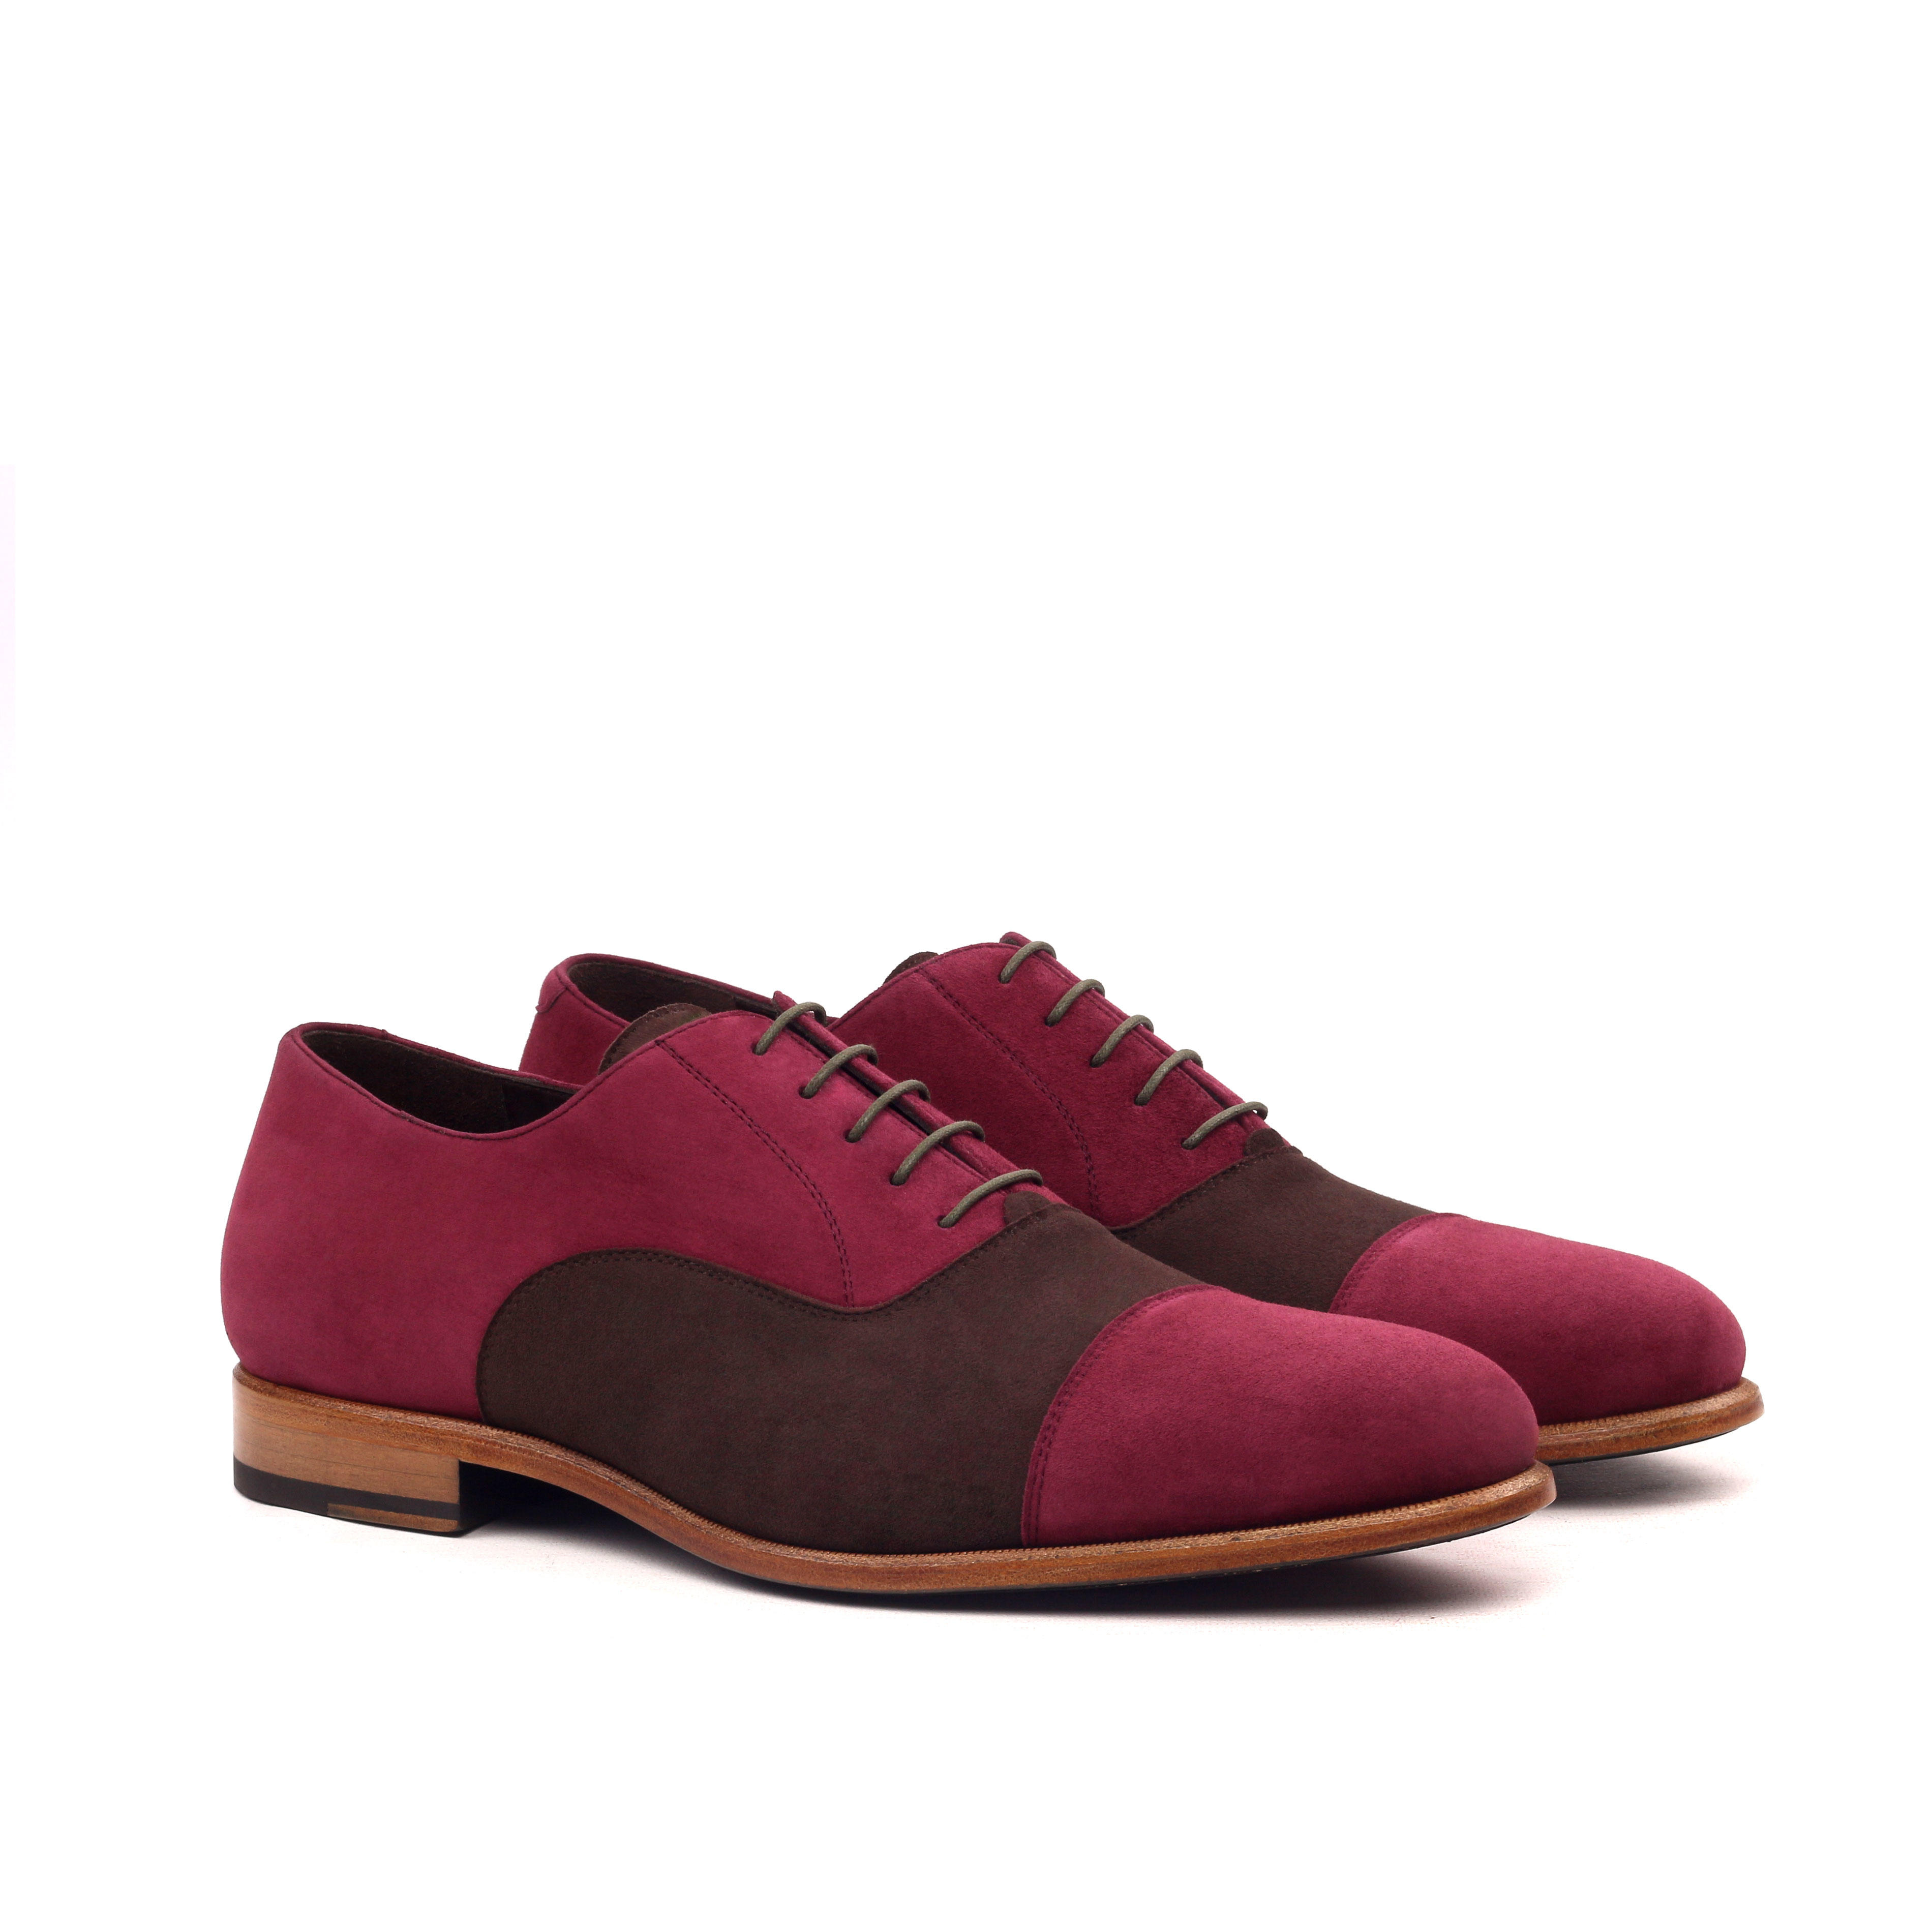 MANOR OF LONDON 'The Oxford' Brown & Wine Suede Shoe Luxury Custom Initials Monogrammed Front Side View